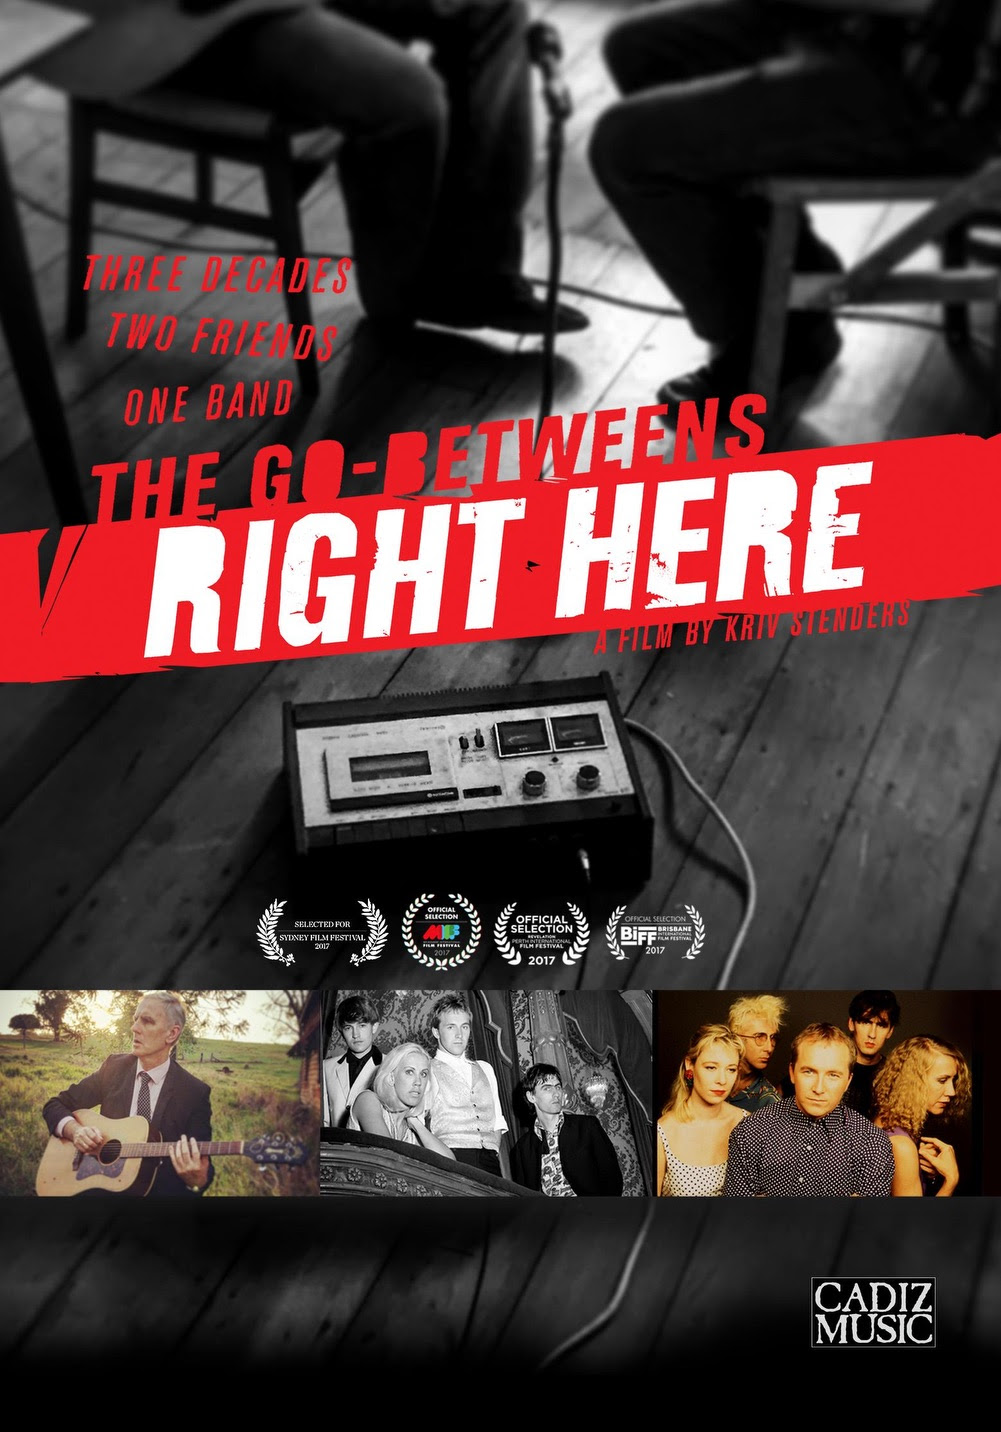 NEWS: 'The Go-Betweens: Right Here' a new documentary out now on DVD